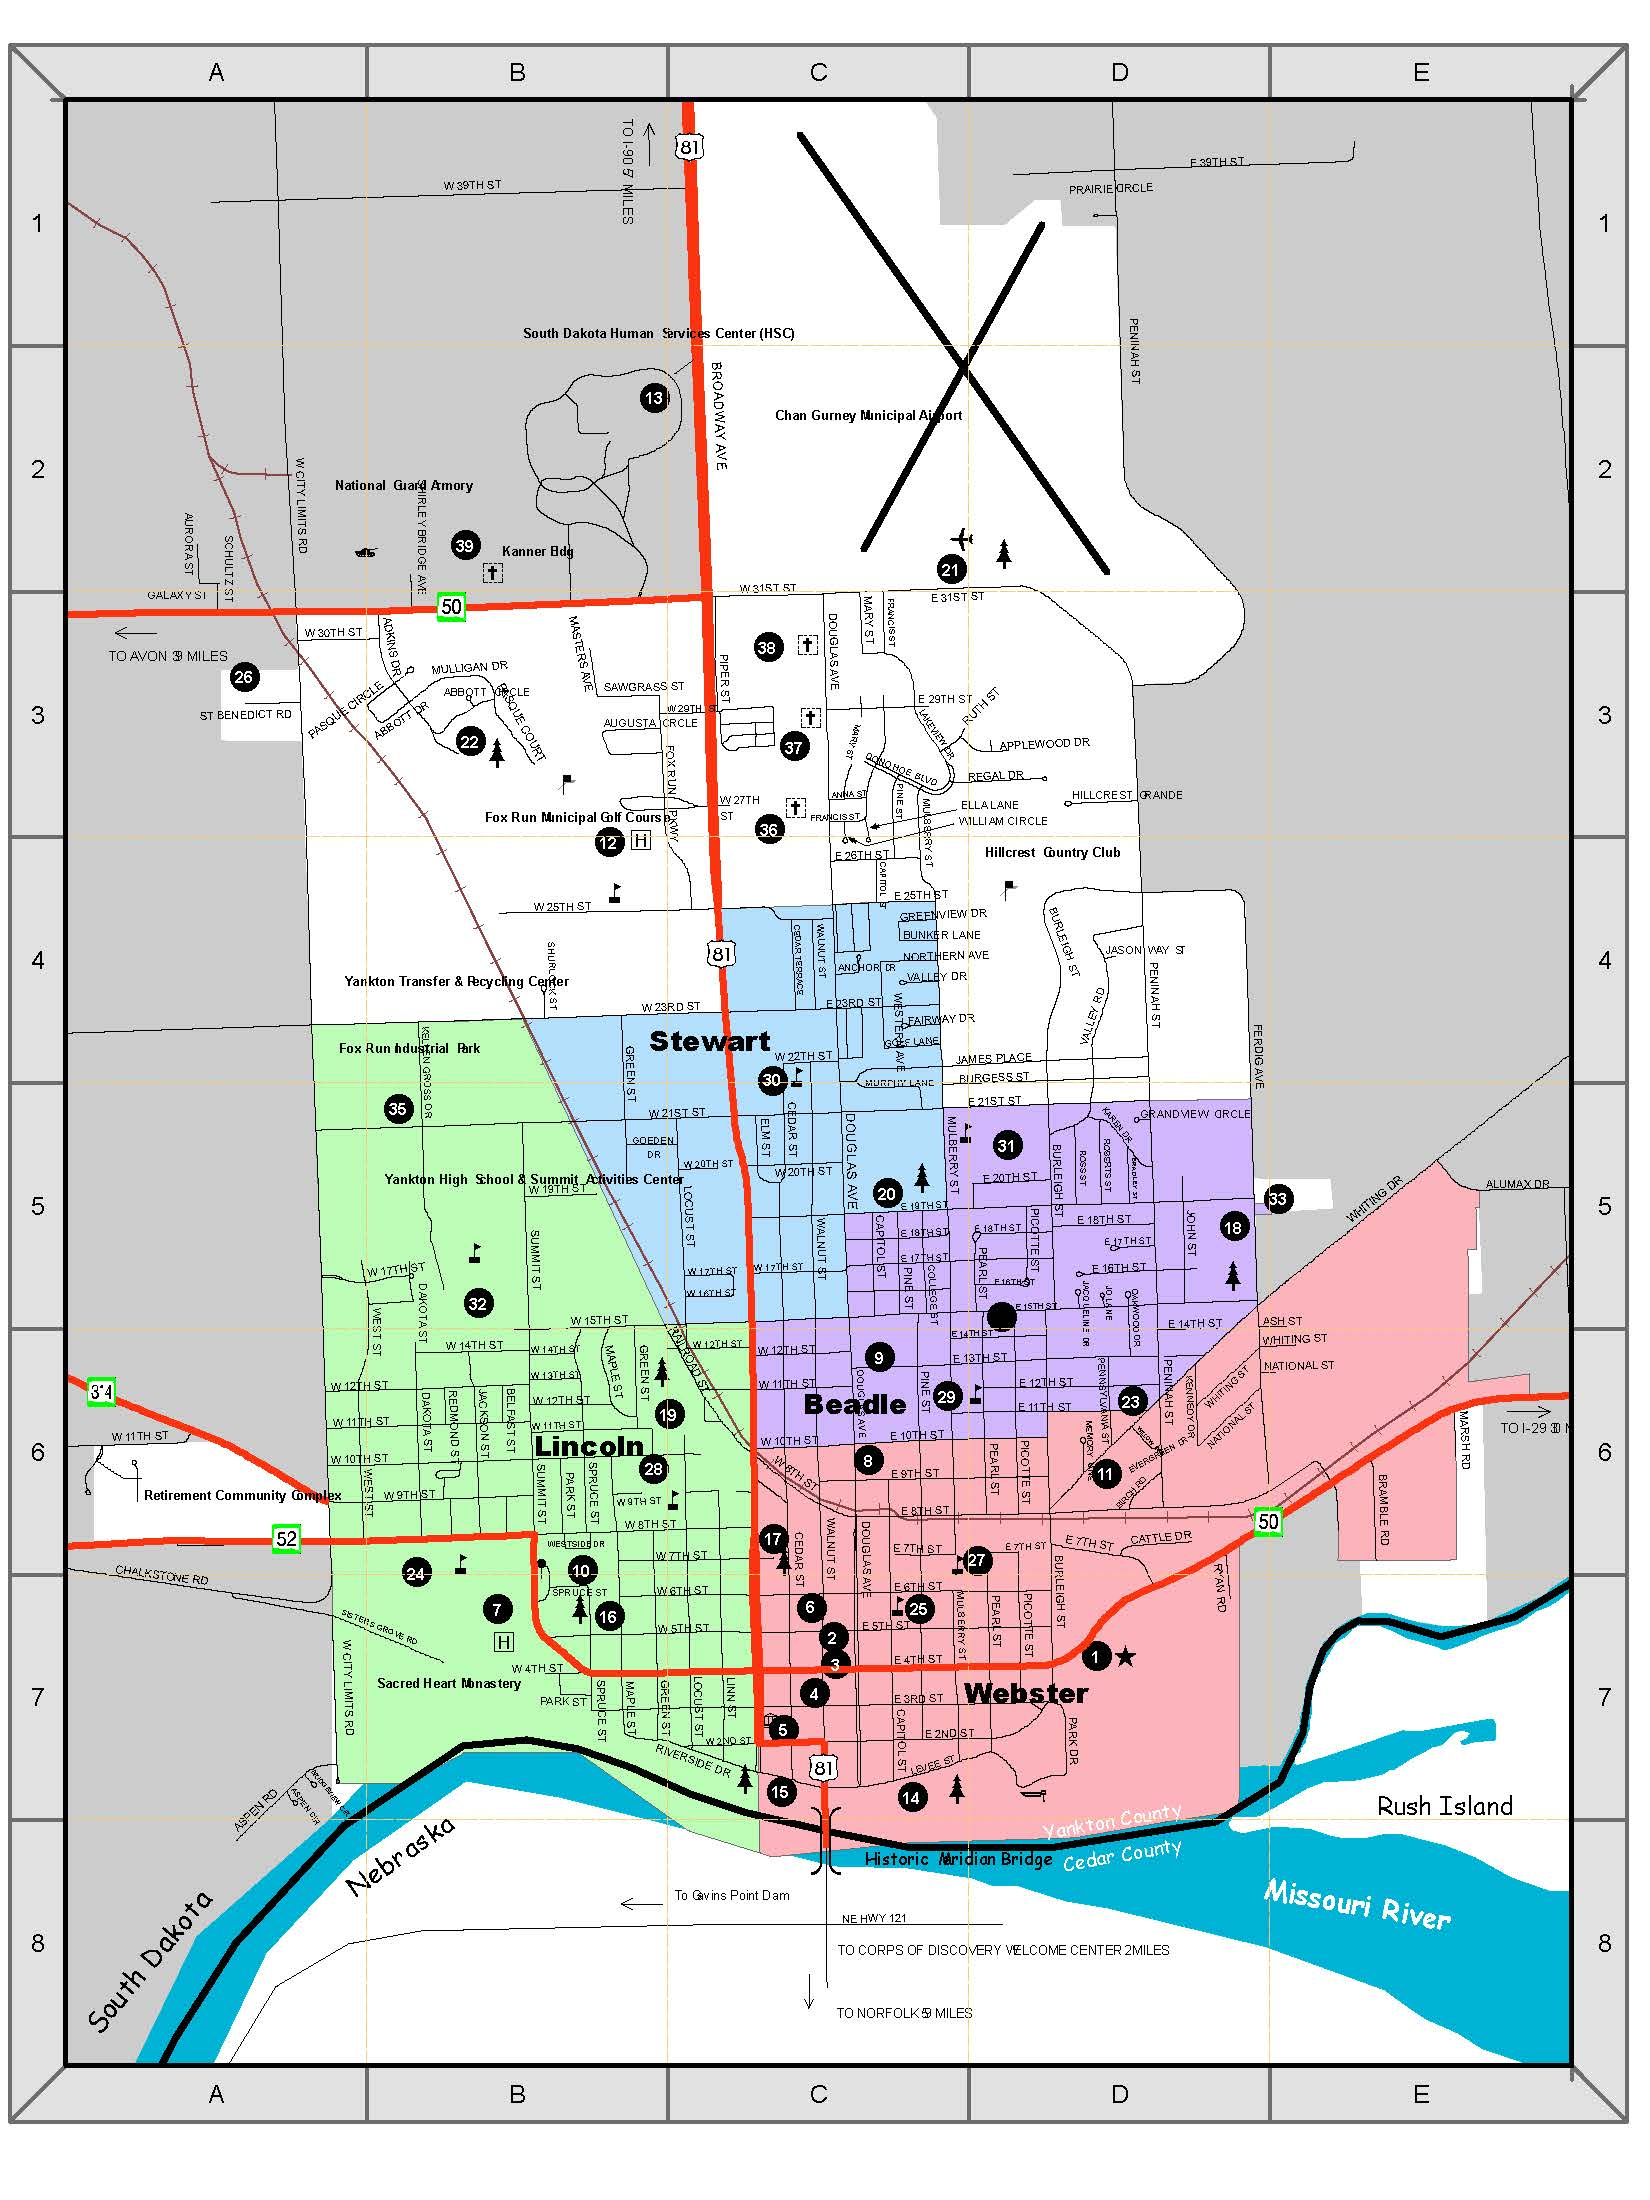 District Schools Boundaries Map